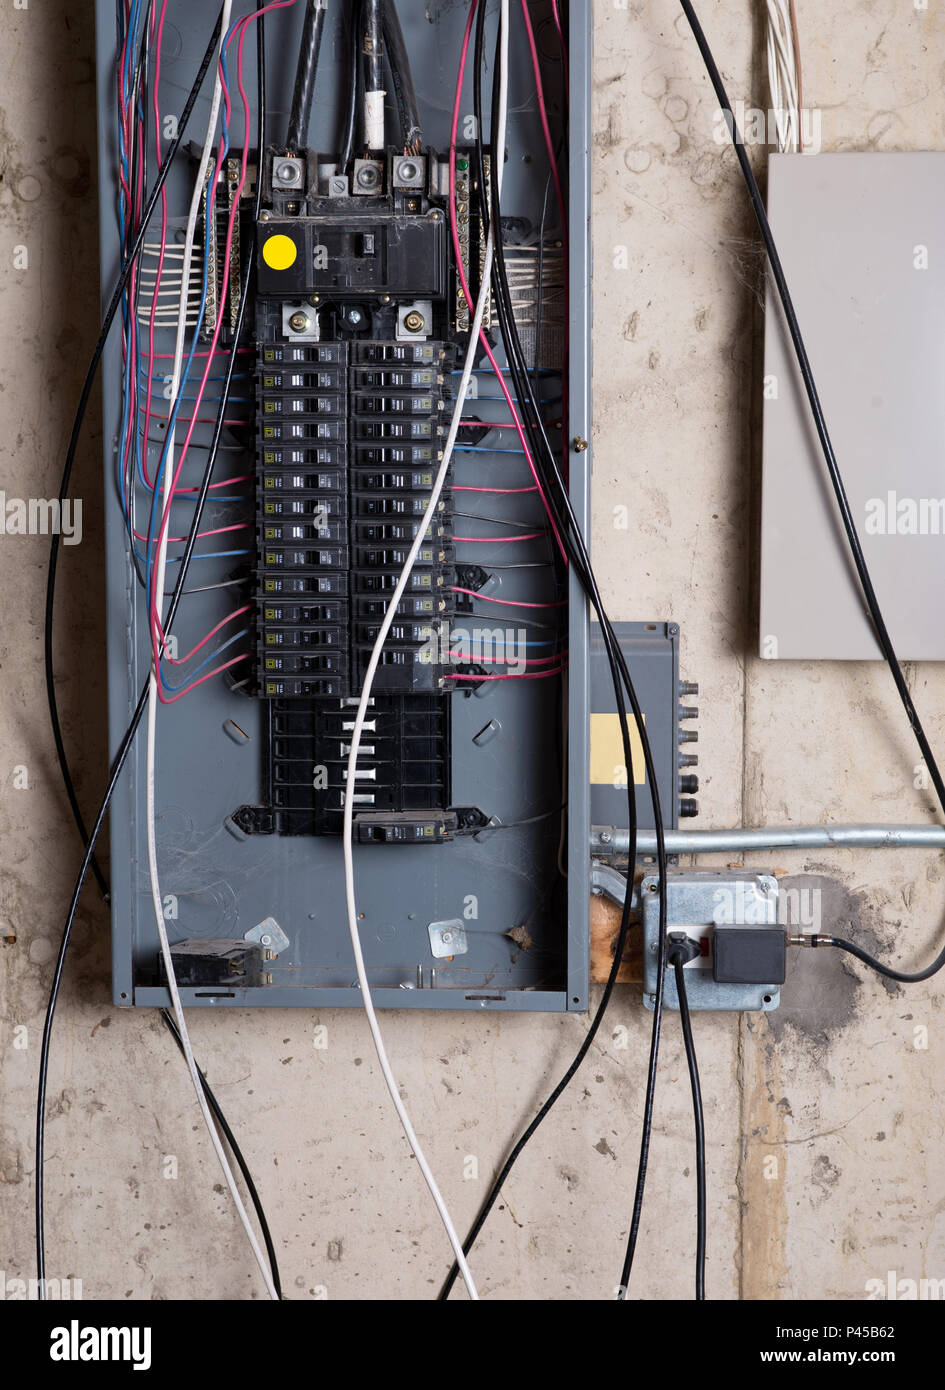 Electrical Service Panel And Branch Circuit Wiring In The Basement House Of Under Remodeling